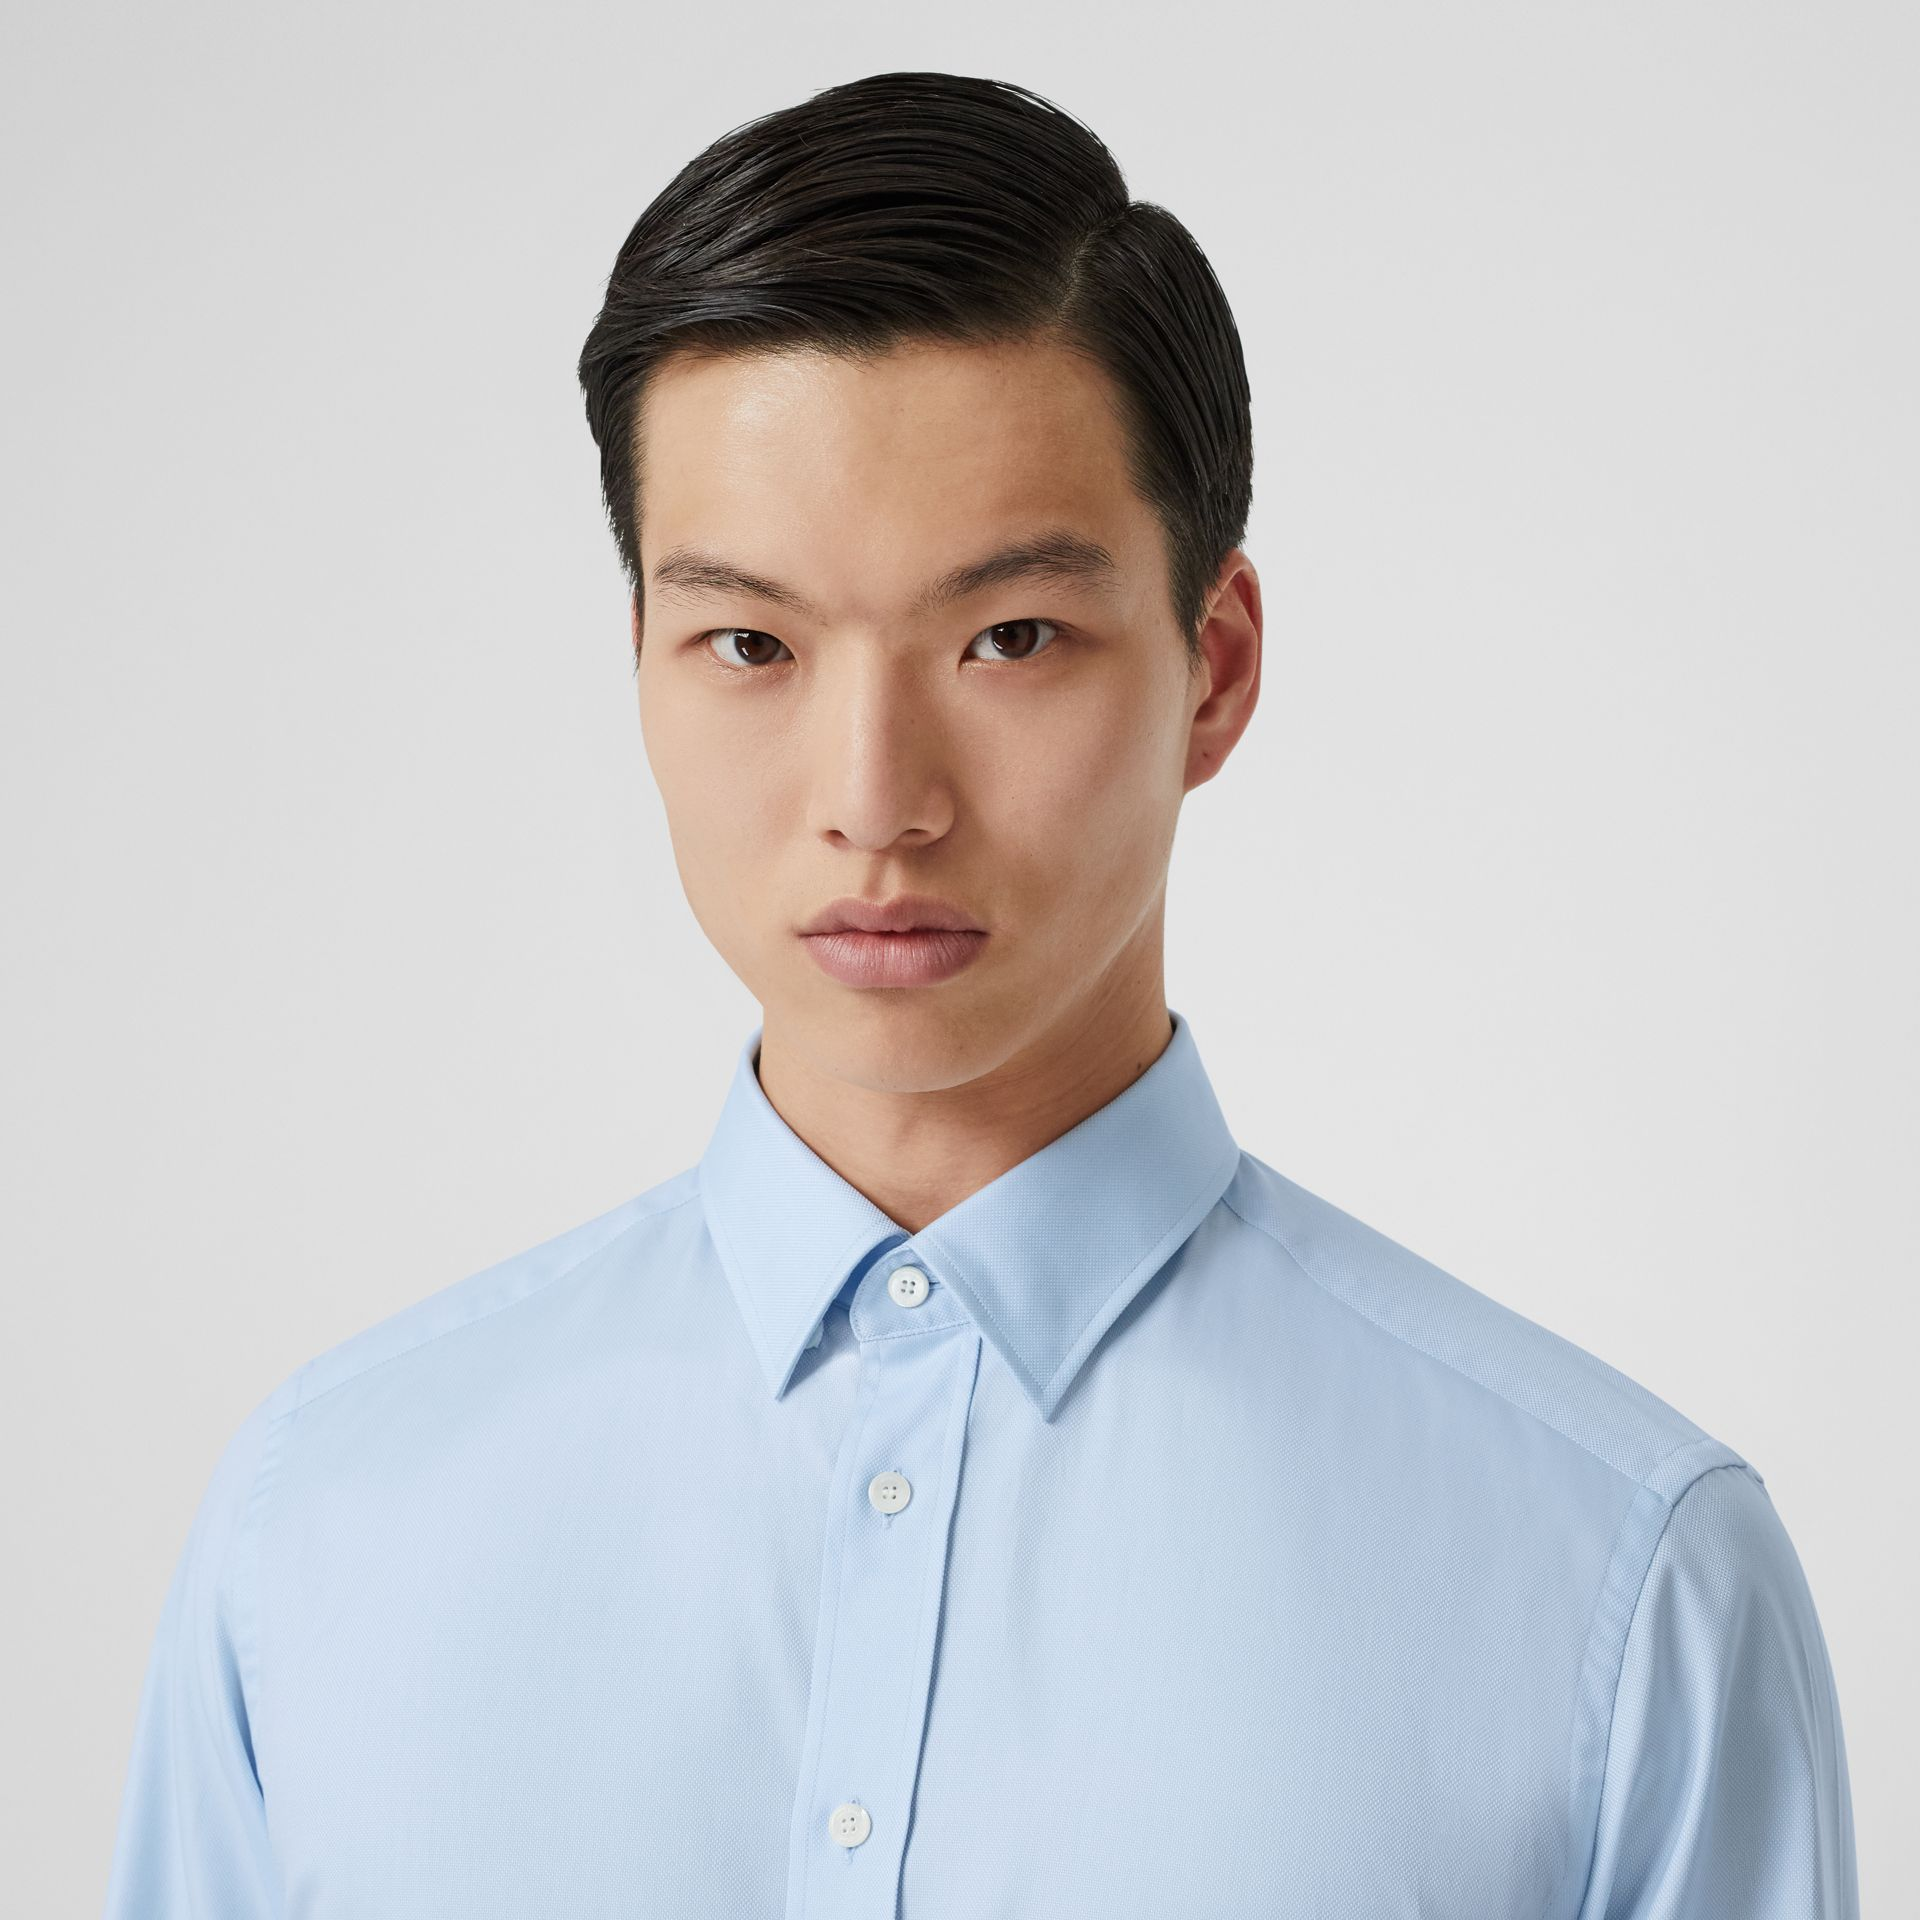 Classic Fit Monogram Motif Cotton Oxford Shirt in Pale Blue - Men | Burberry Canada - gallery image 1